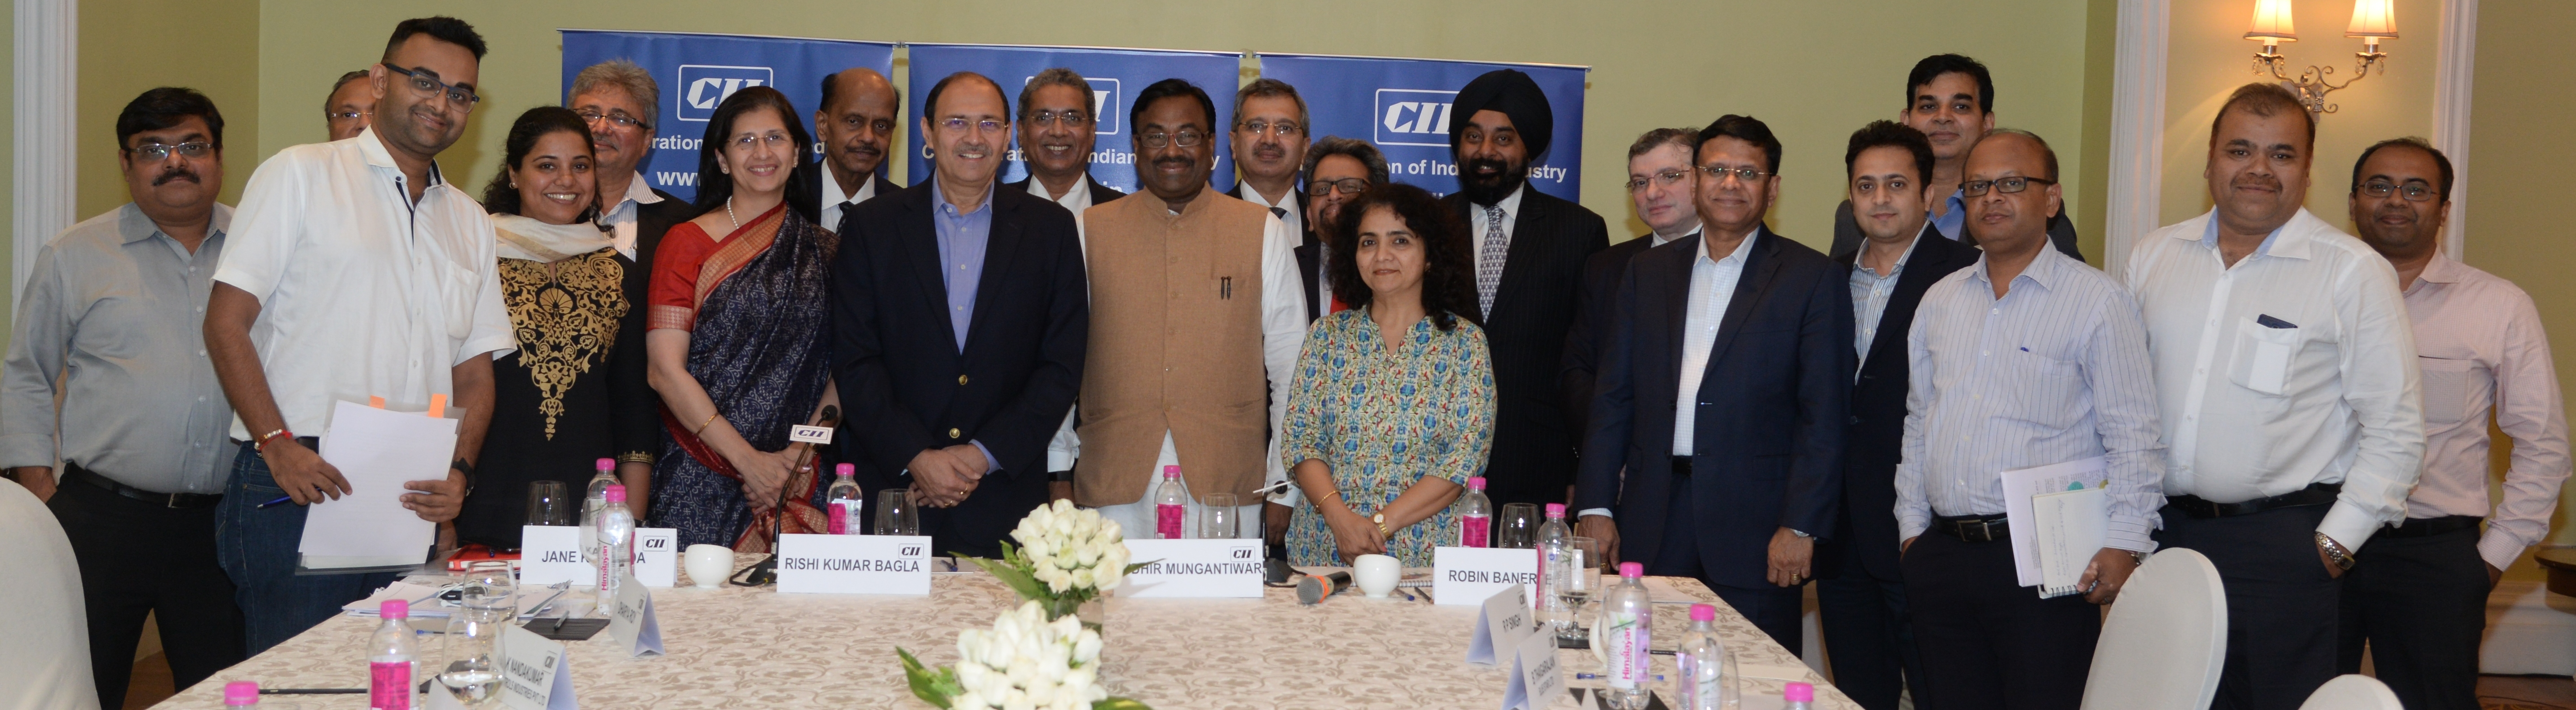 CII IWN Maharashtra Chapter presented Recommendations on Gender Budgeting